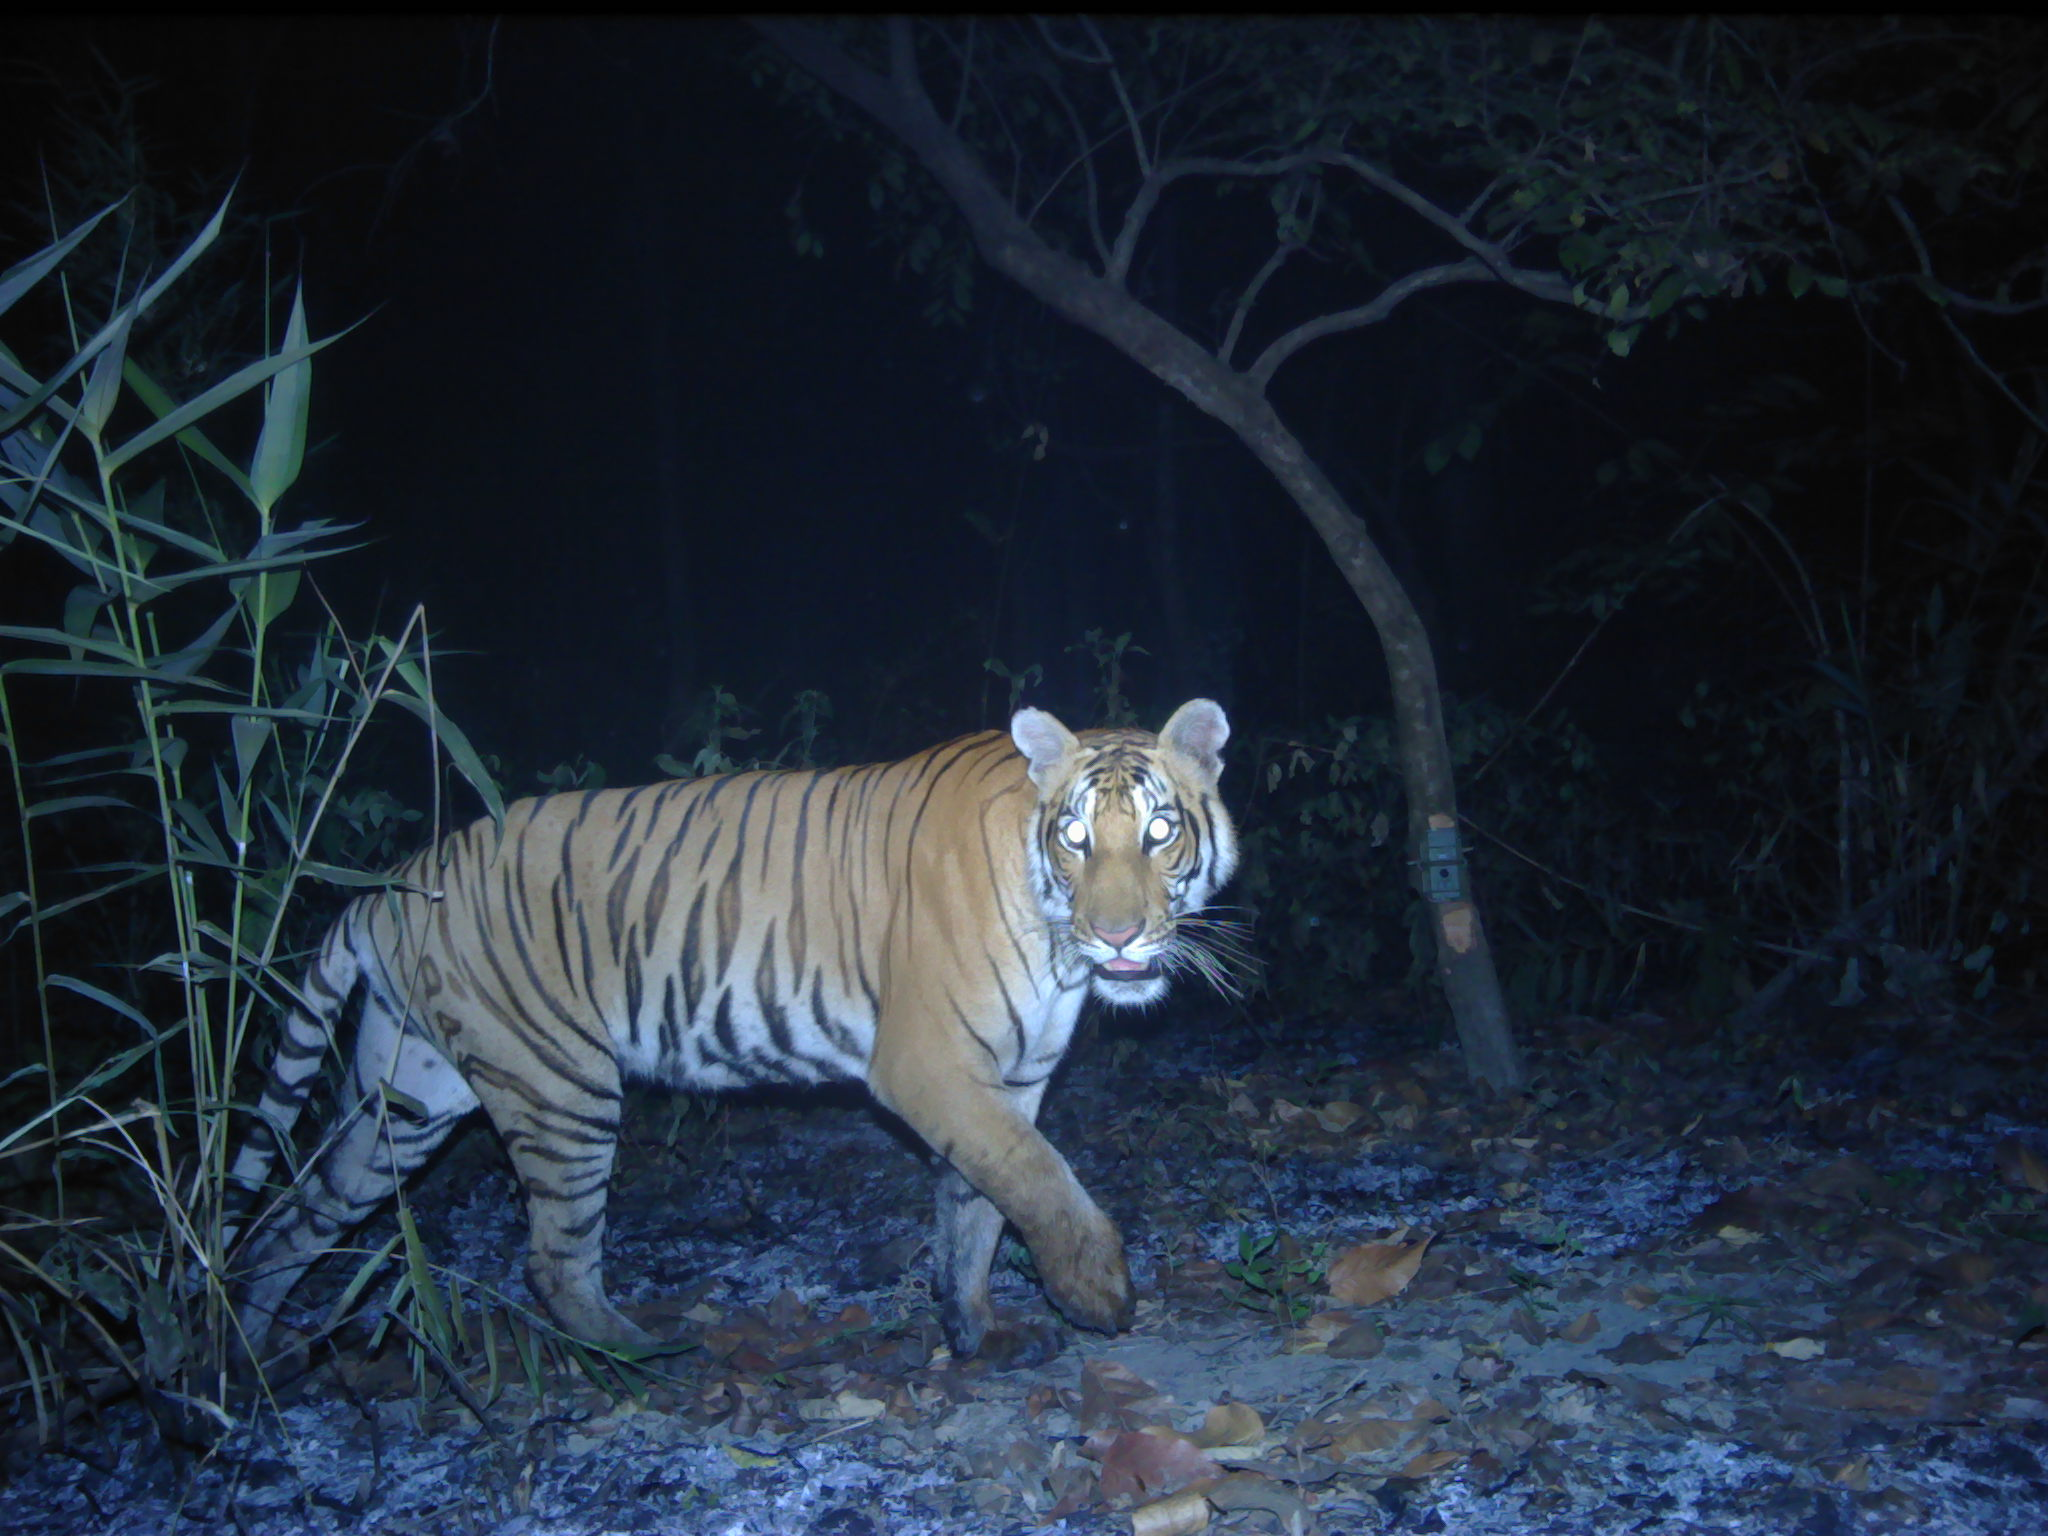 news.mongabay.com - Mike Gaworecki - The tiger population in Nepal's Parsa National Park is recovering rapidly